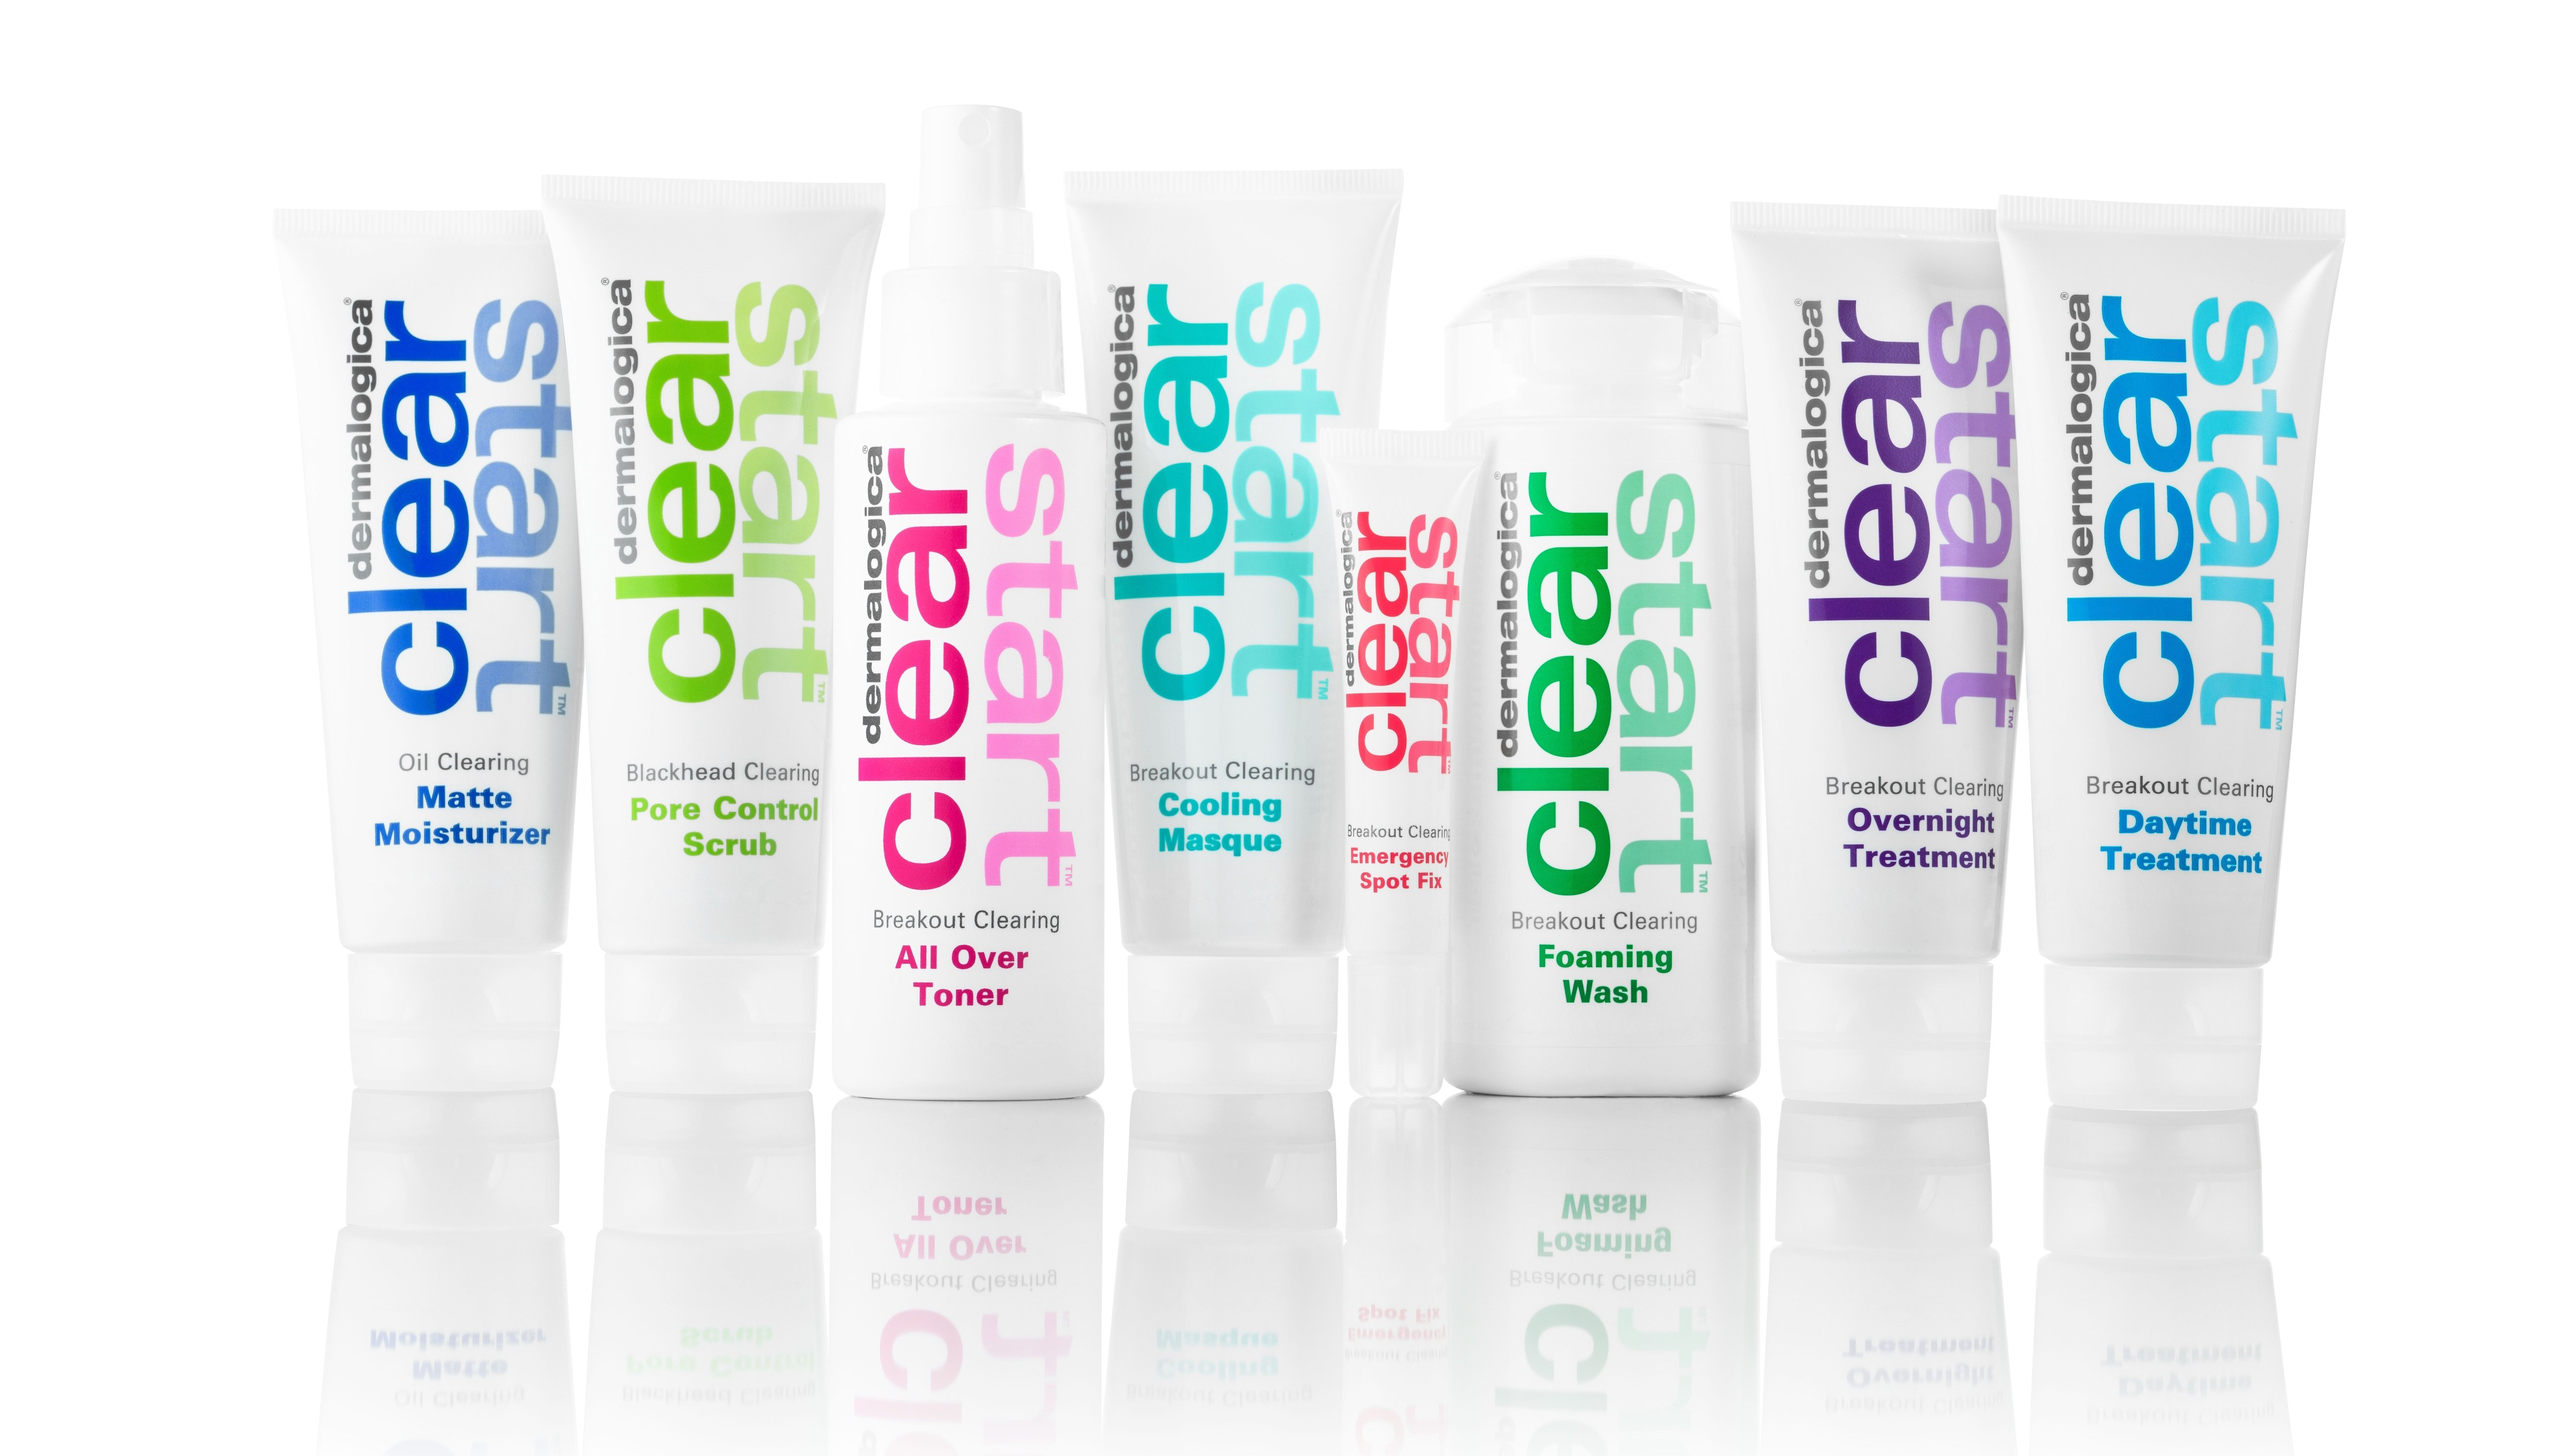 dermalogica clear start the lanes health amp beauty